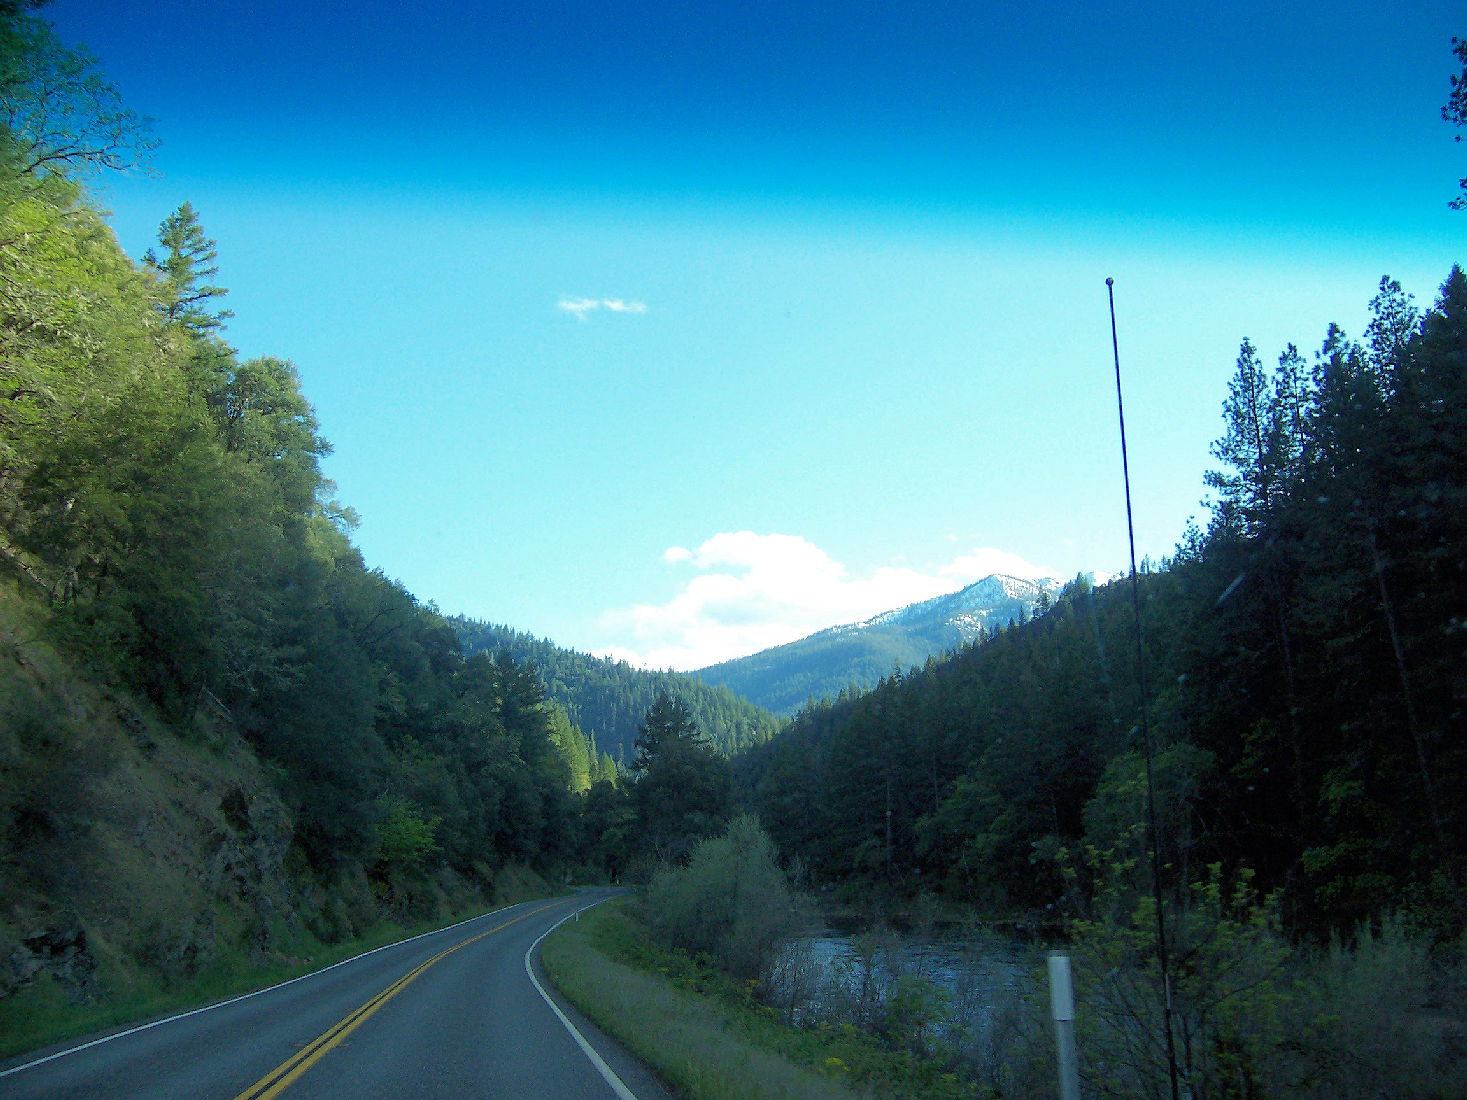 The drive home to Happy Camp on the Klamath River Highway.